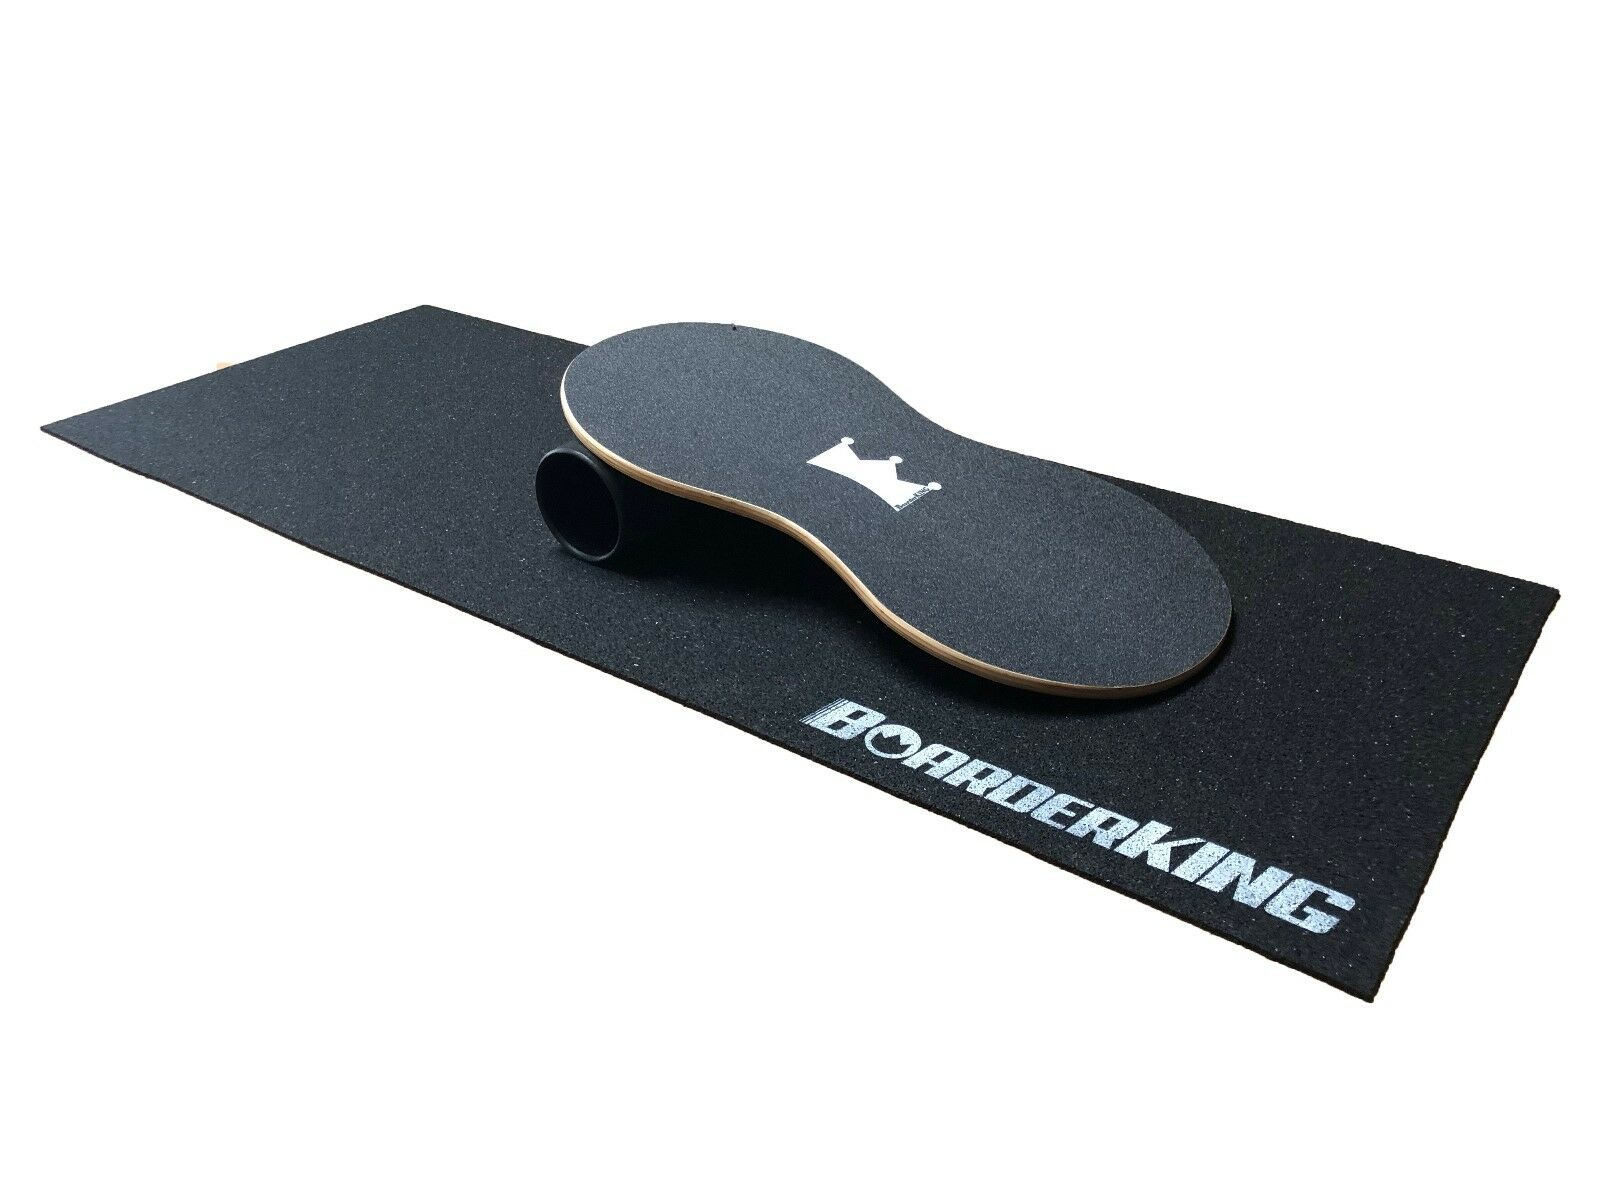 Boarderking indoorboard Physio Set incl. rôle et Tapis balance board